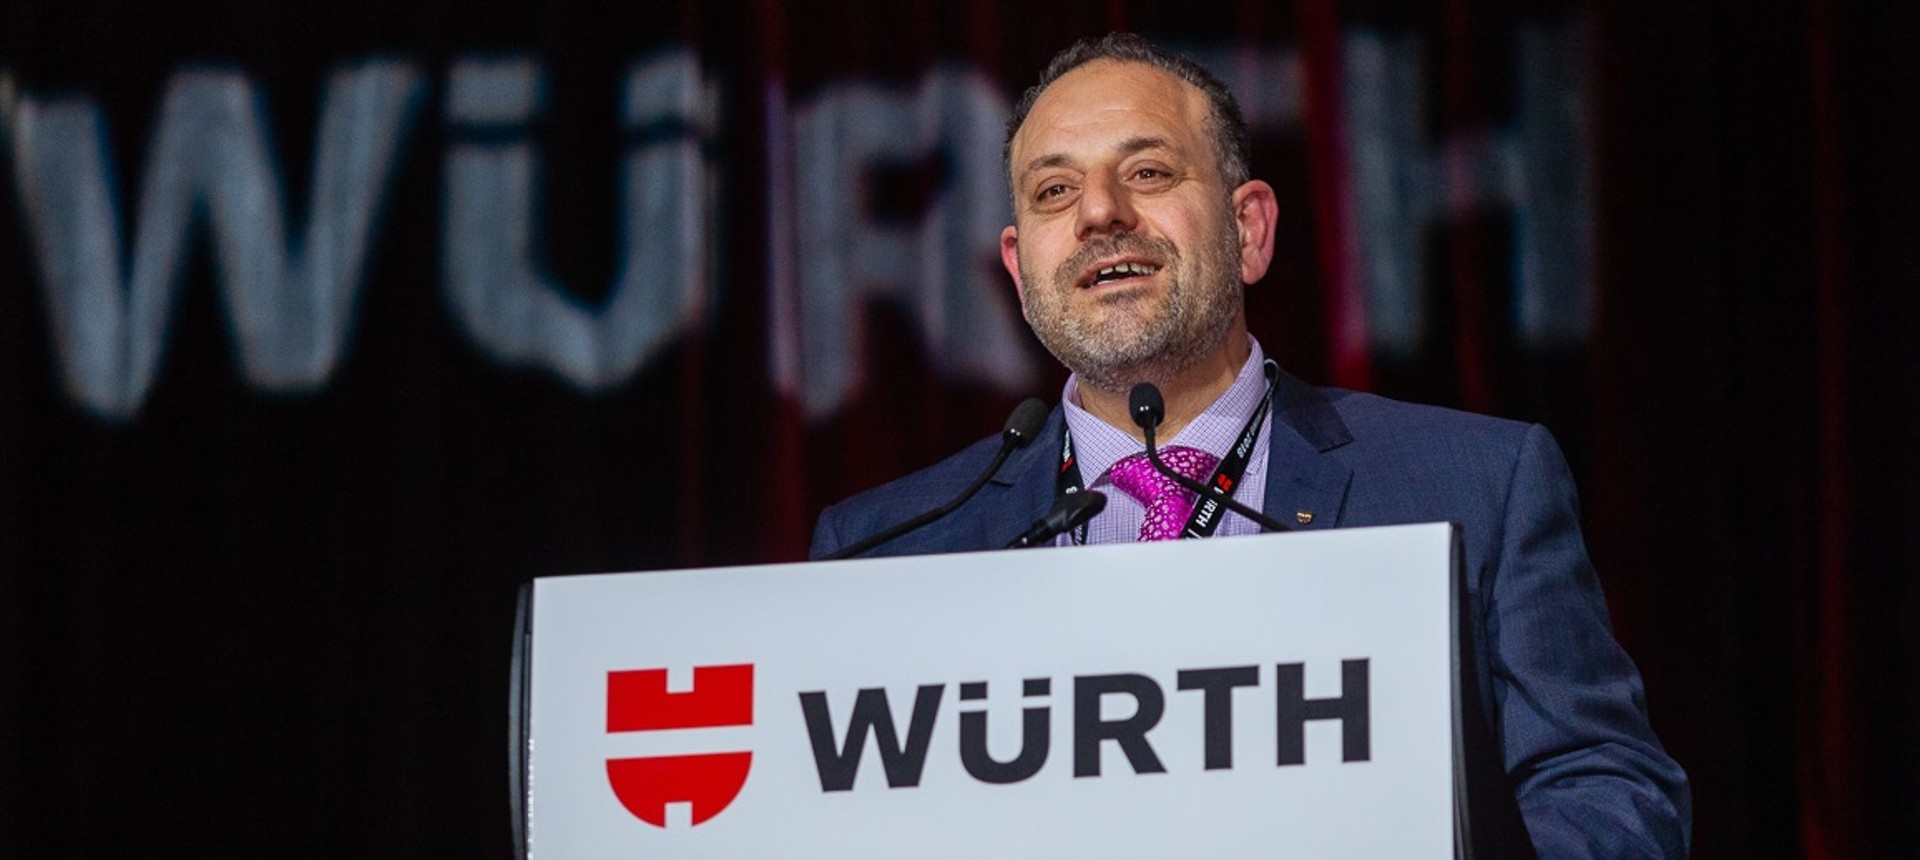 Serge Oppedisano - Senior Vice President of the Wurth Group & CEO Wurth Australia